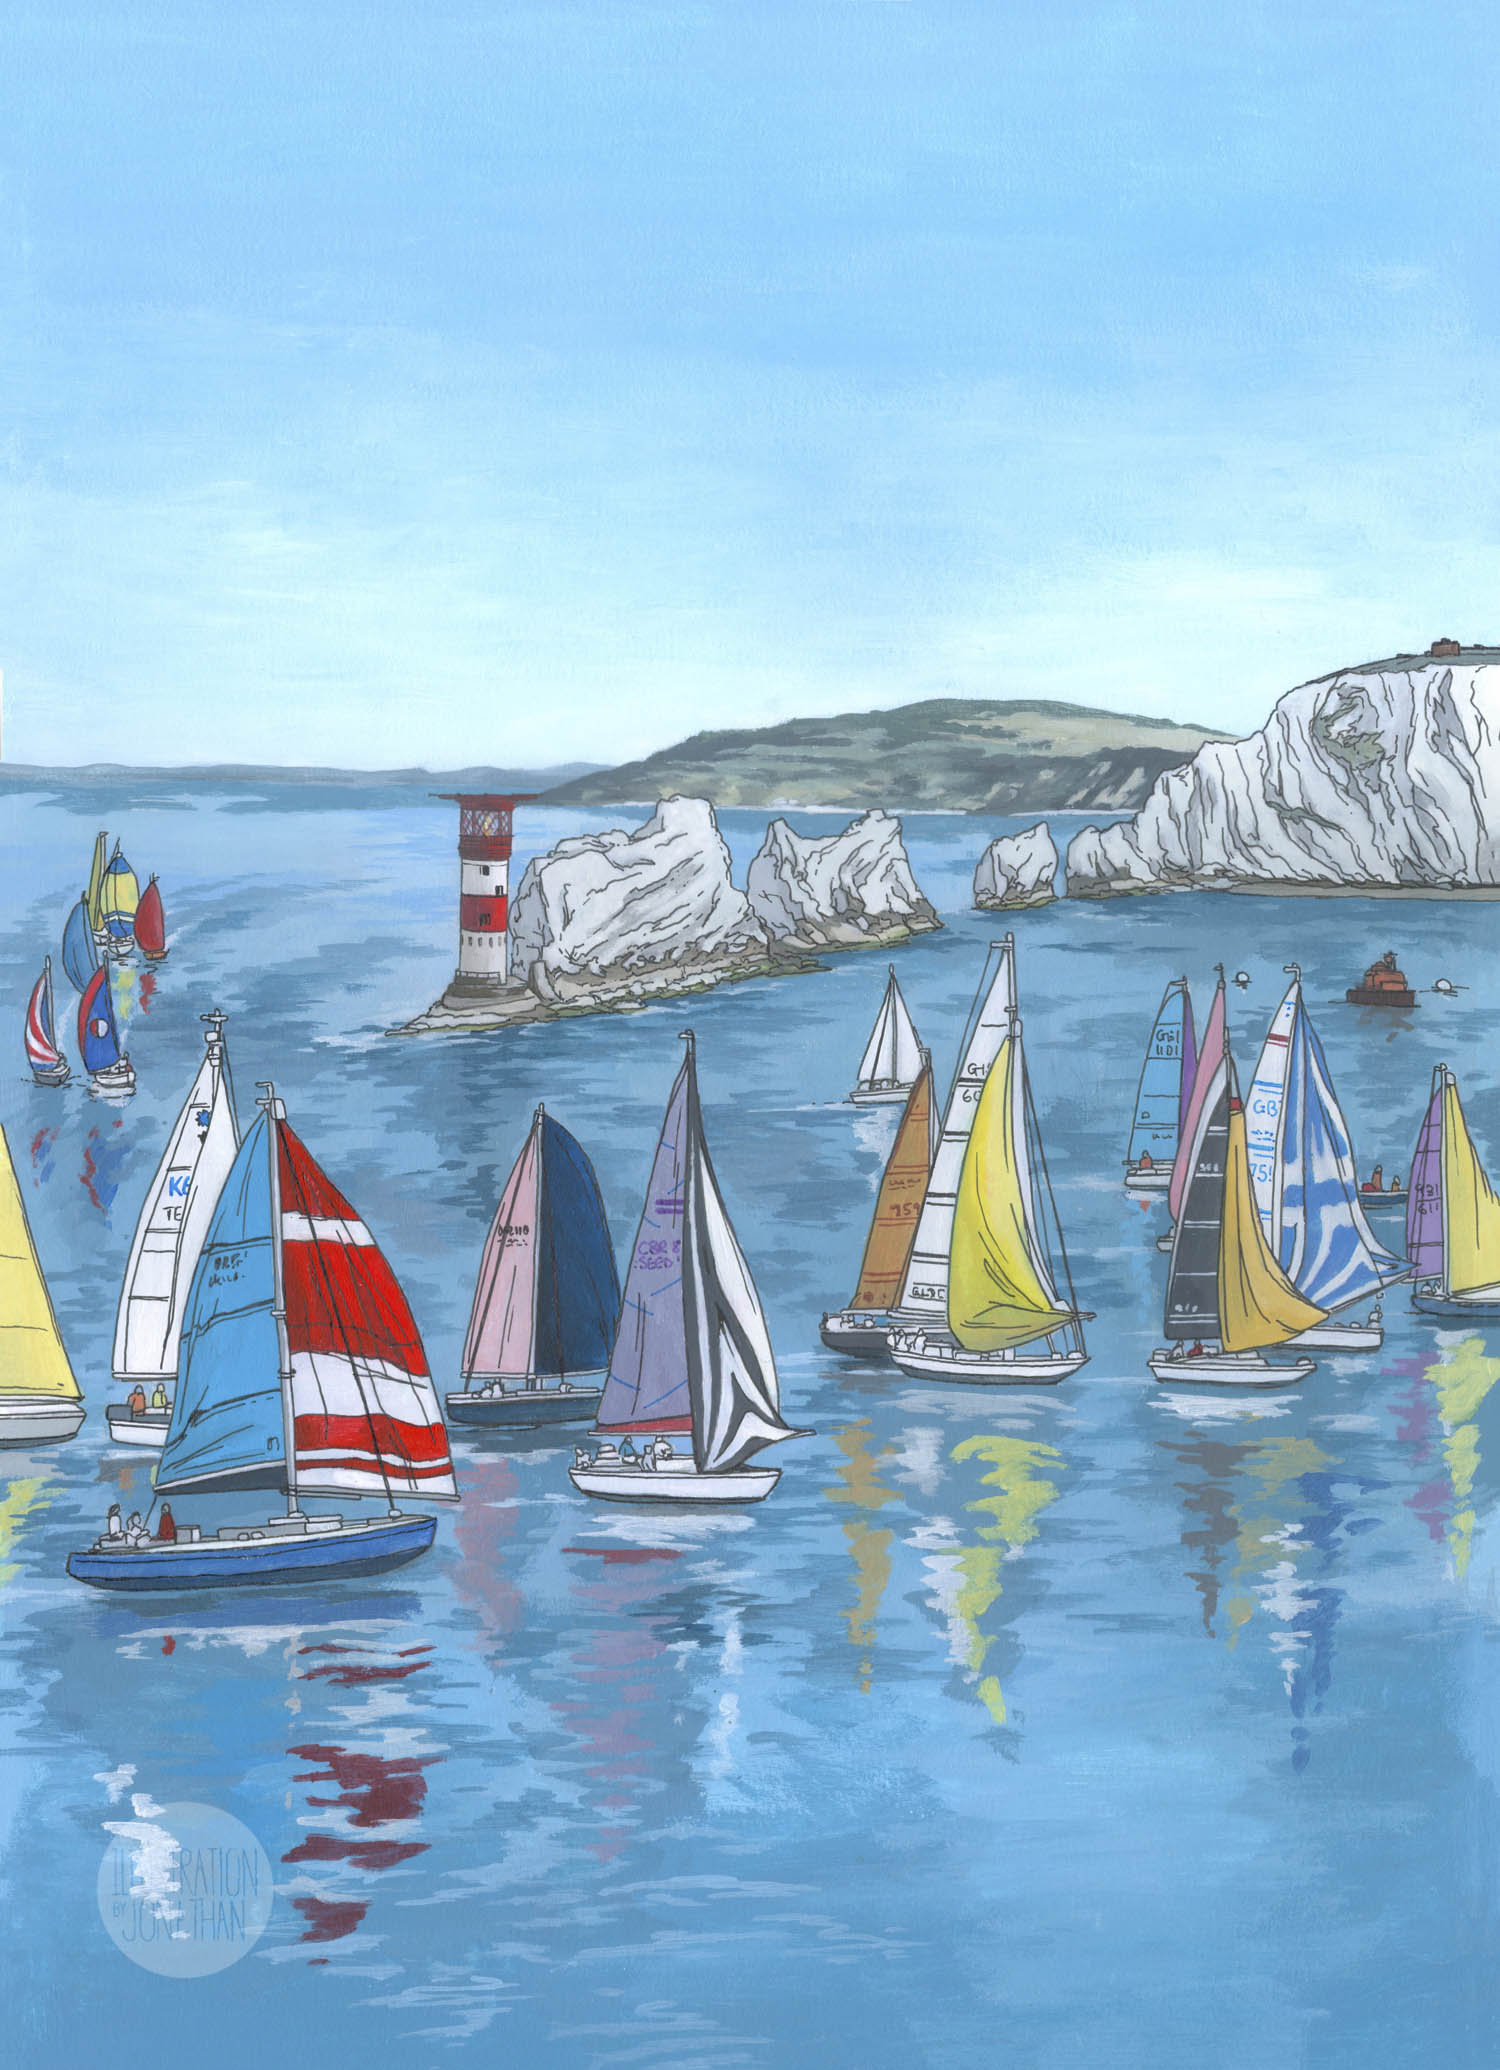 Round the Island Race - Illustration by Jonathan Chapman